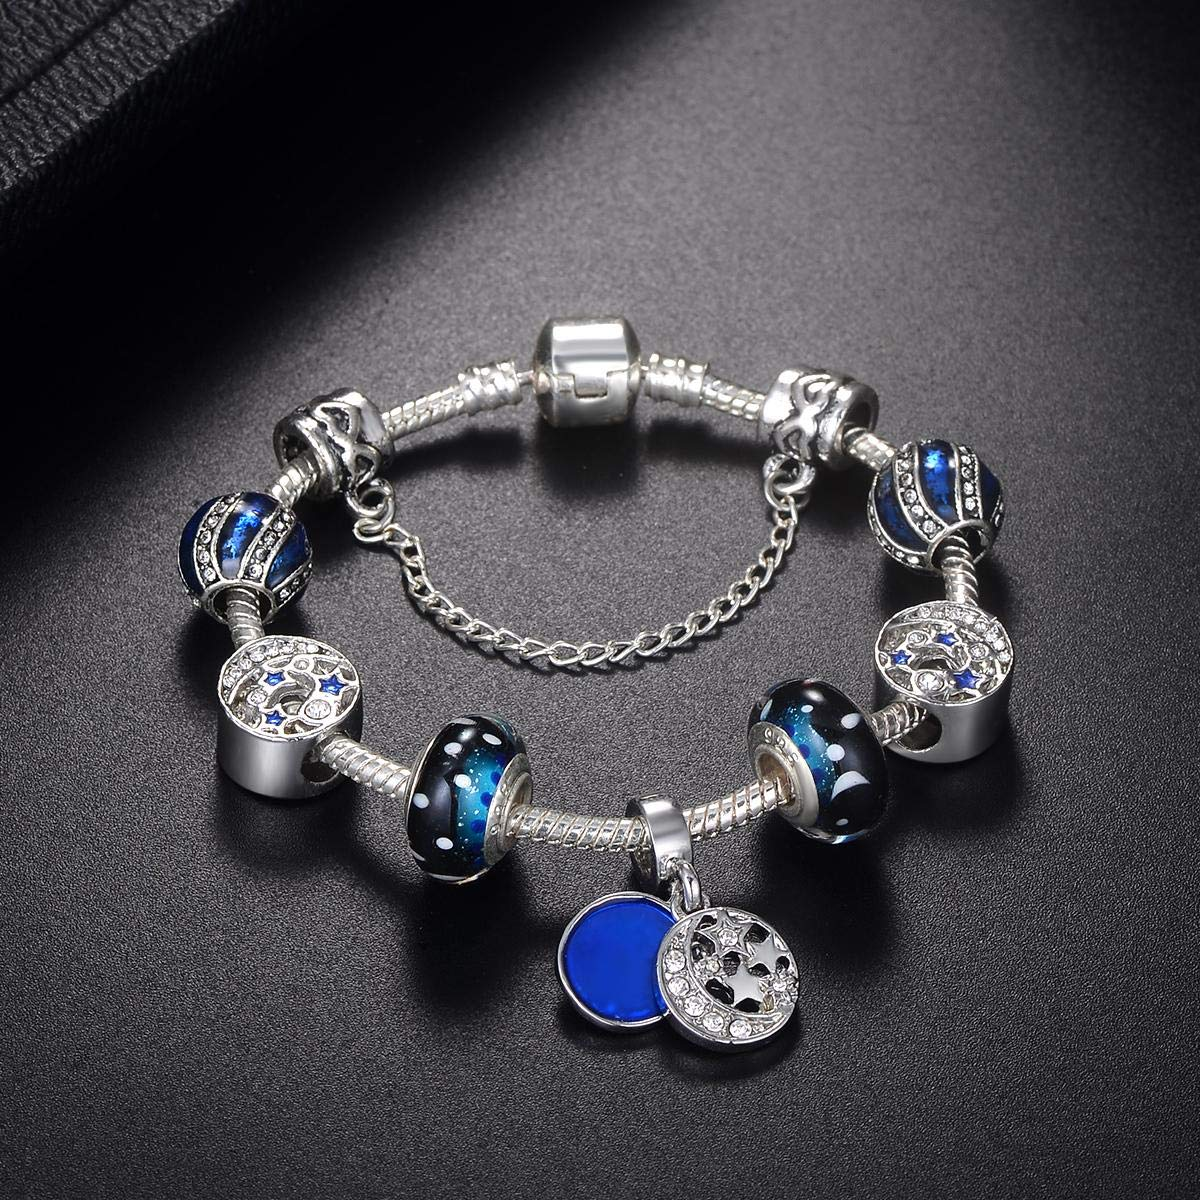 abab8e7d5 Pandora Style 925 Silver Plated Romantic Blue Night Sky Fashion Charm  Bracelet with CZ Moon Stars Hearts, Gift for Women and Teen Girls:  Amazon.ae: ...